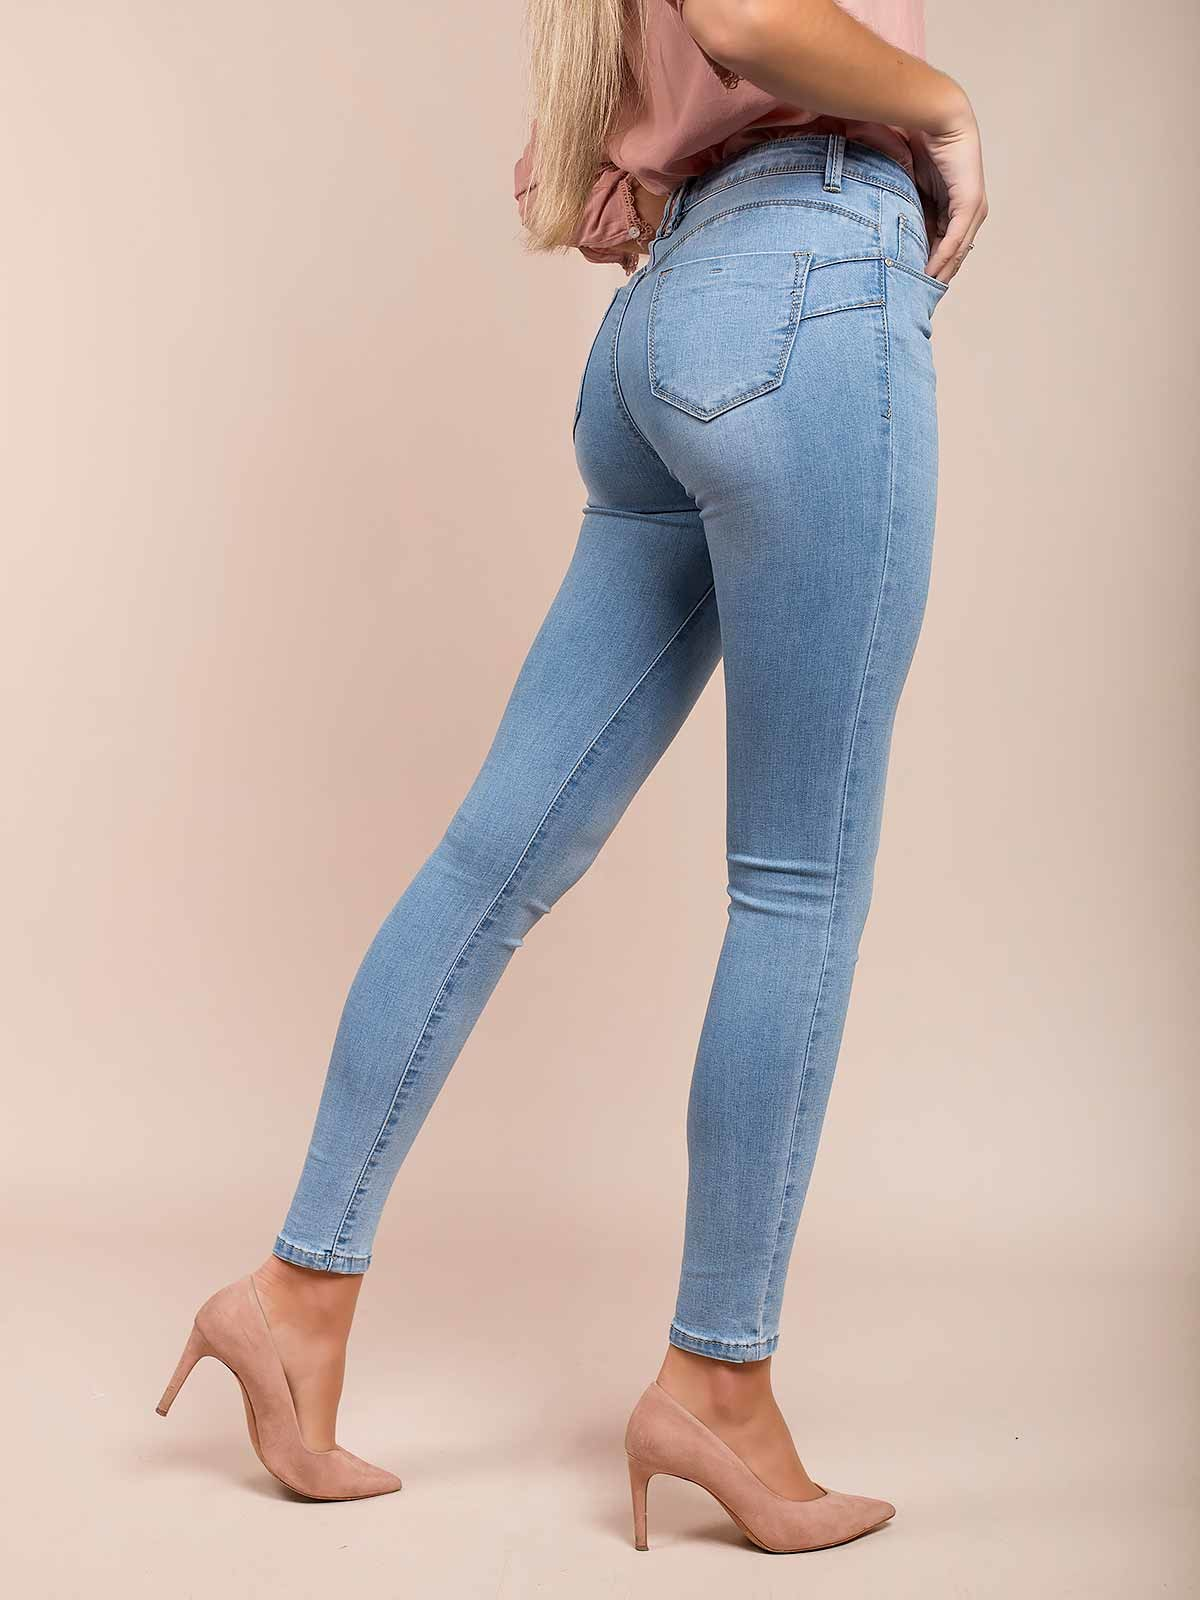 Vaqueros push up jeans cintura alta